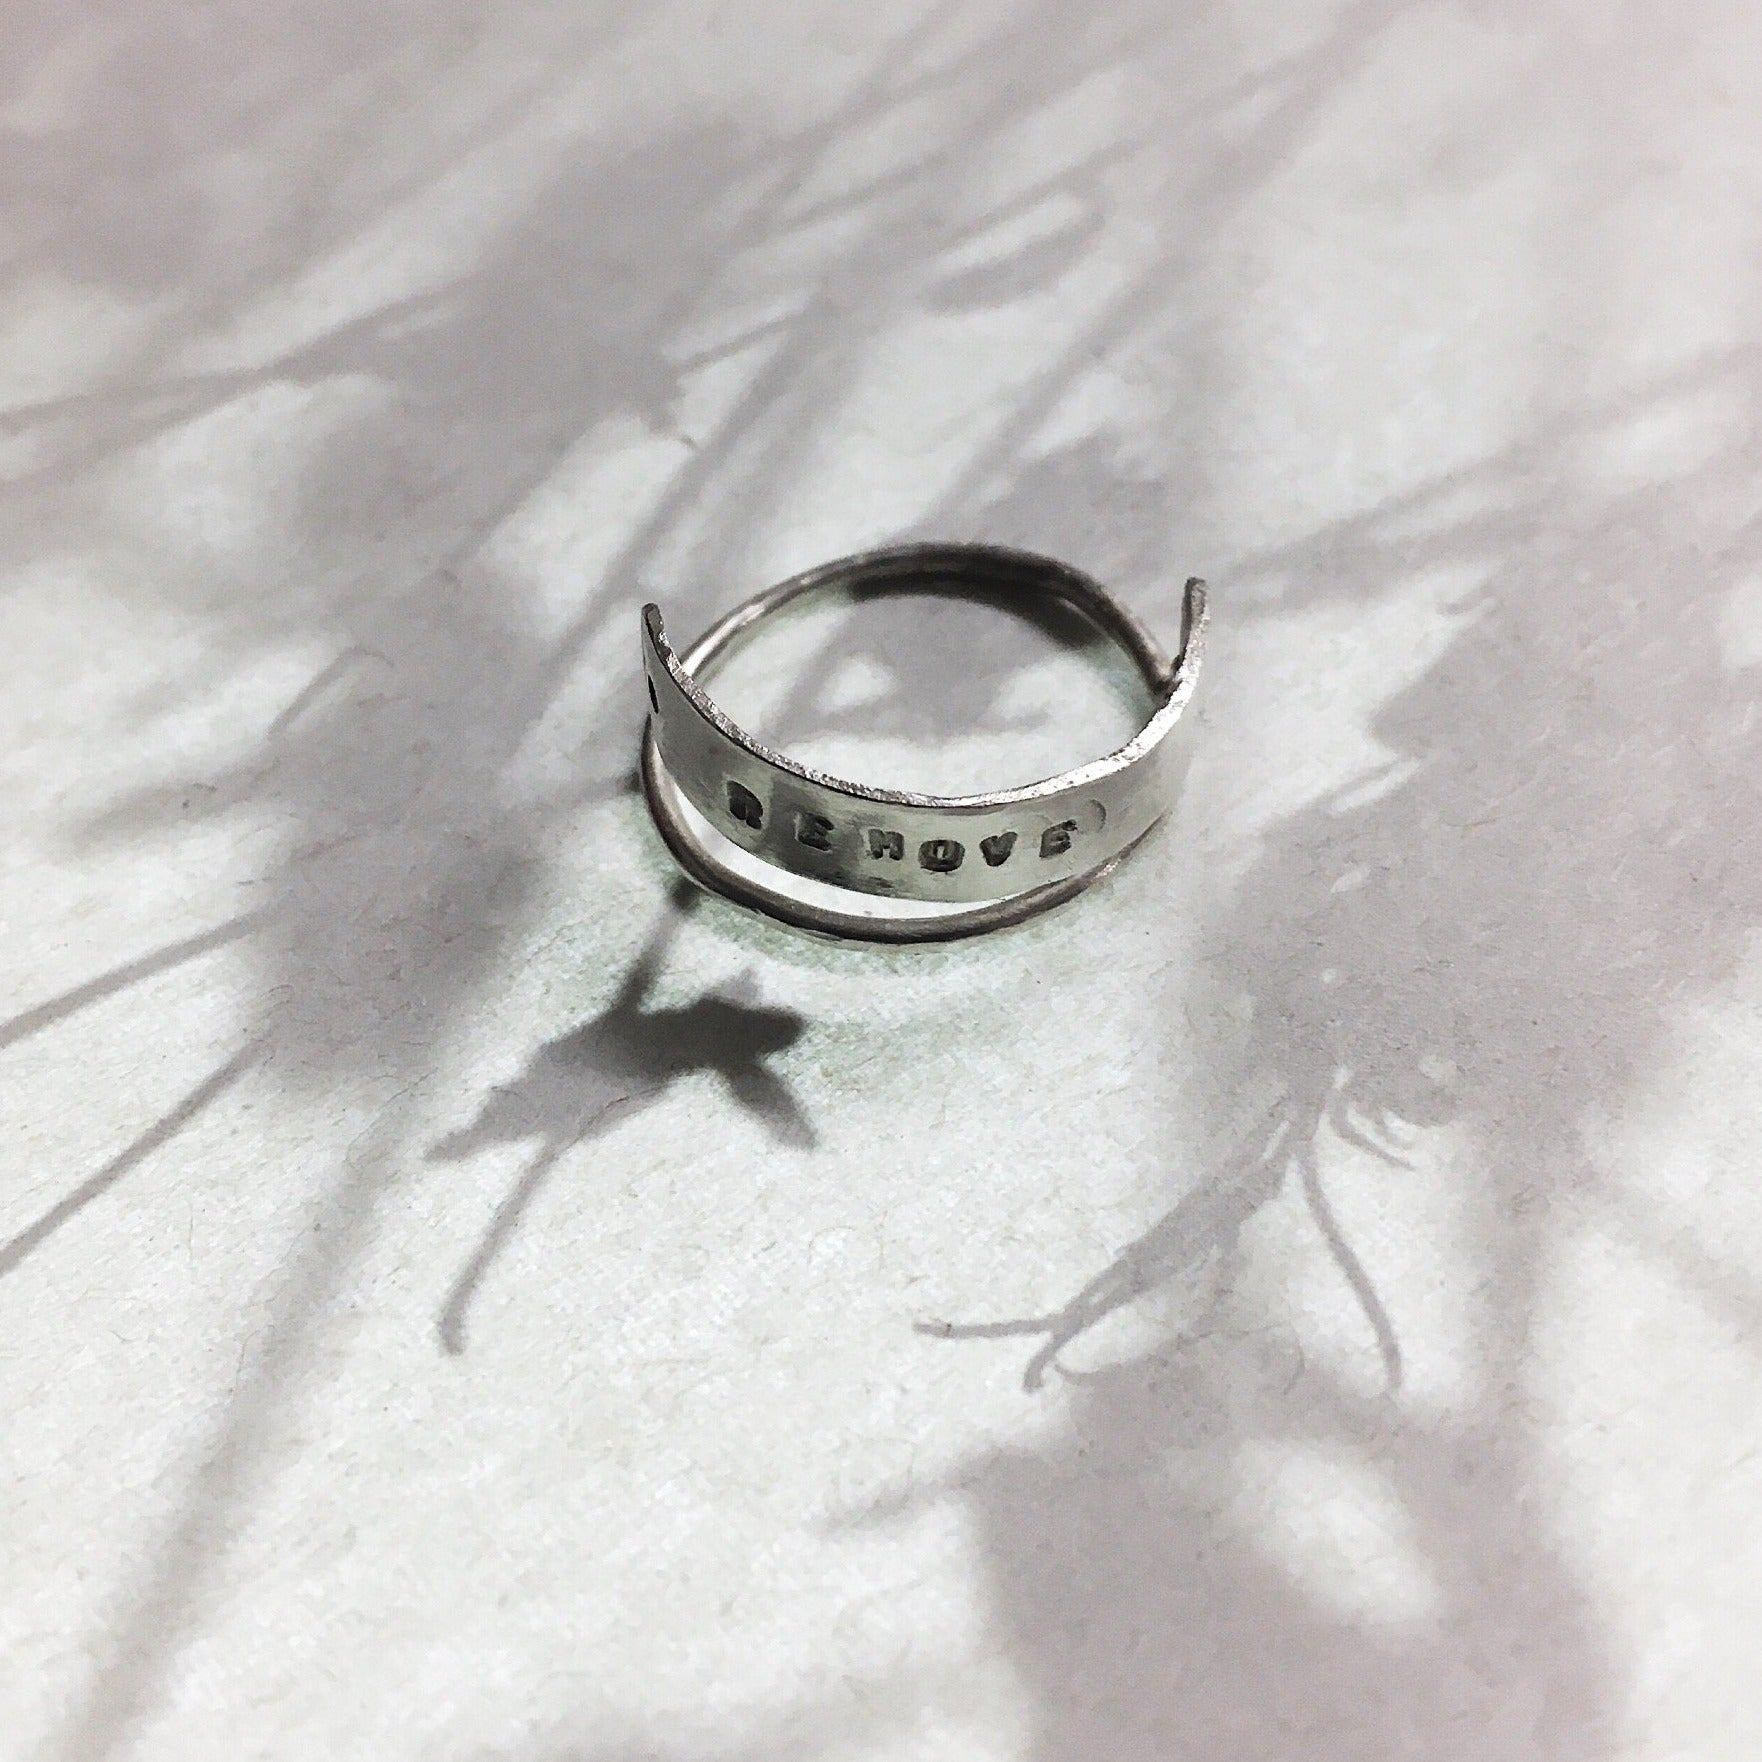 The Irony set ring 'Remove'  double ring